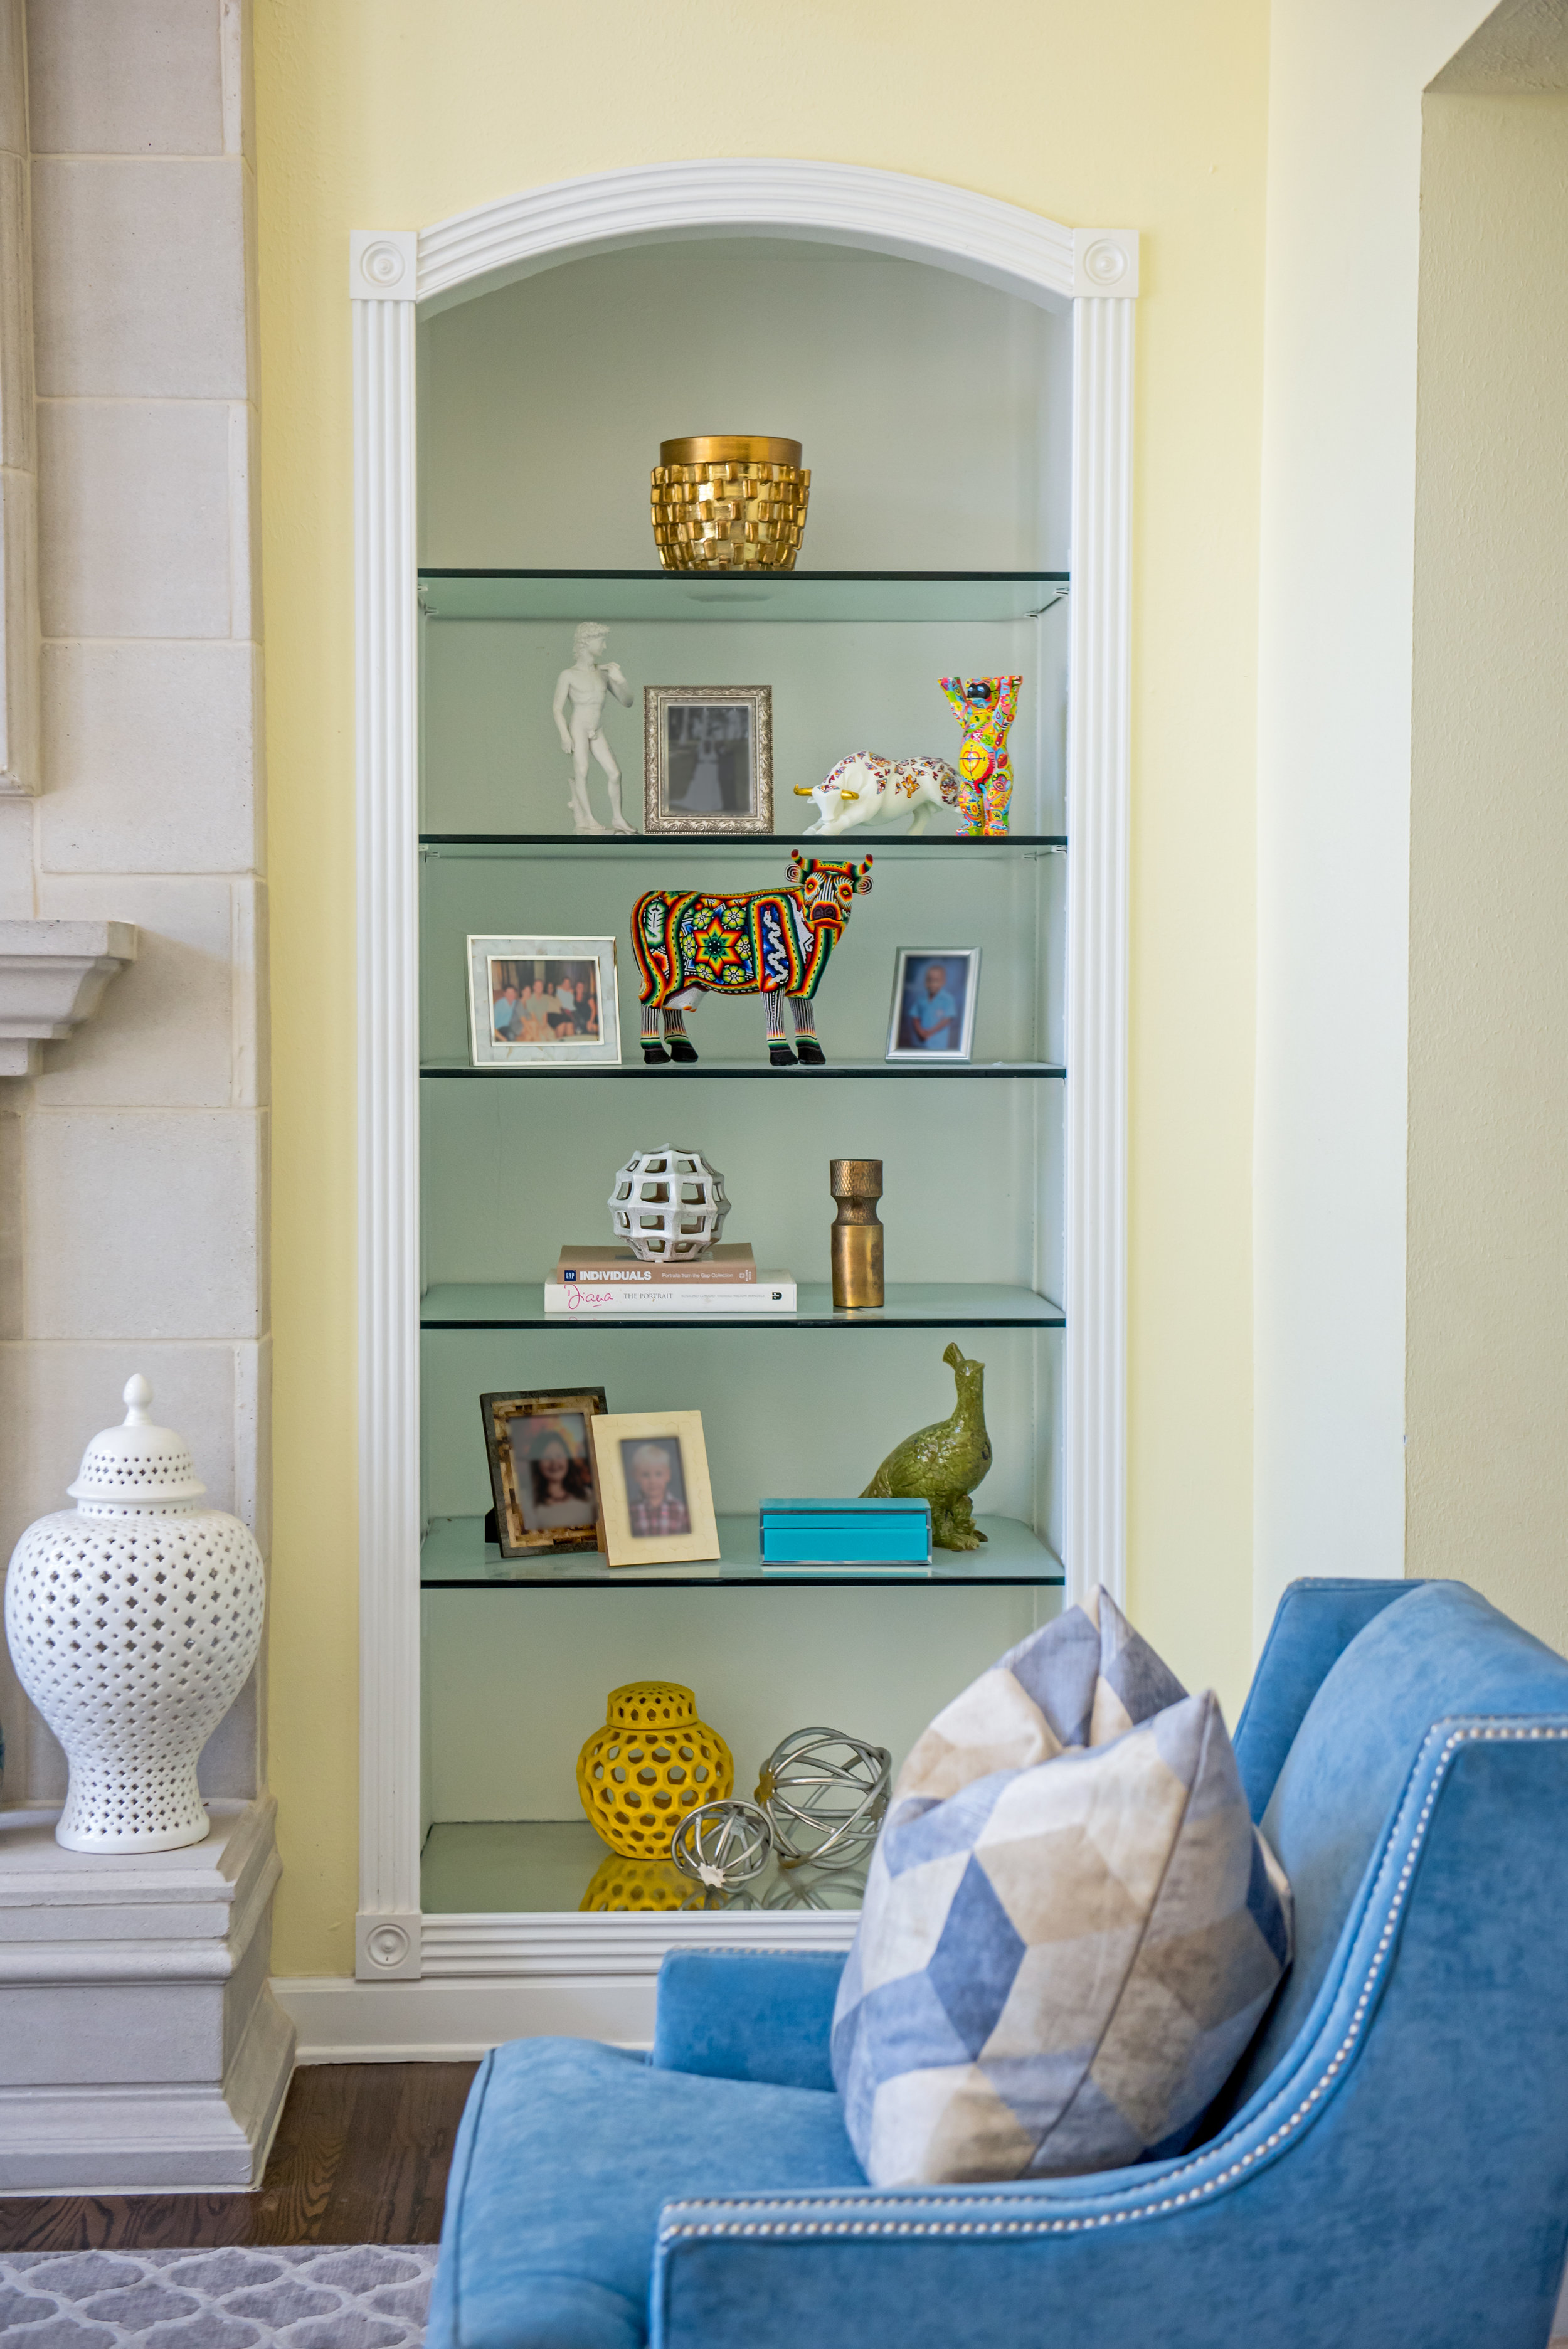 2- Encanto Park Accessories Shelf Phoenix.jpg